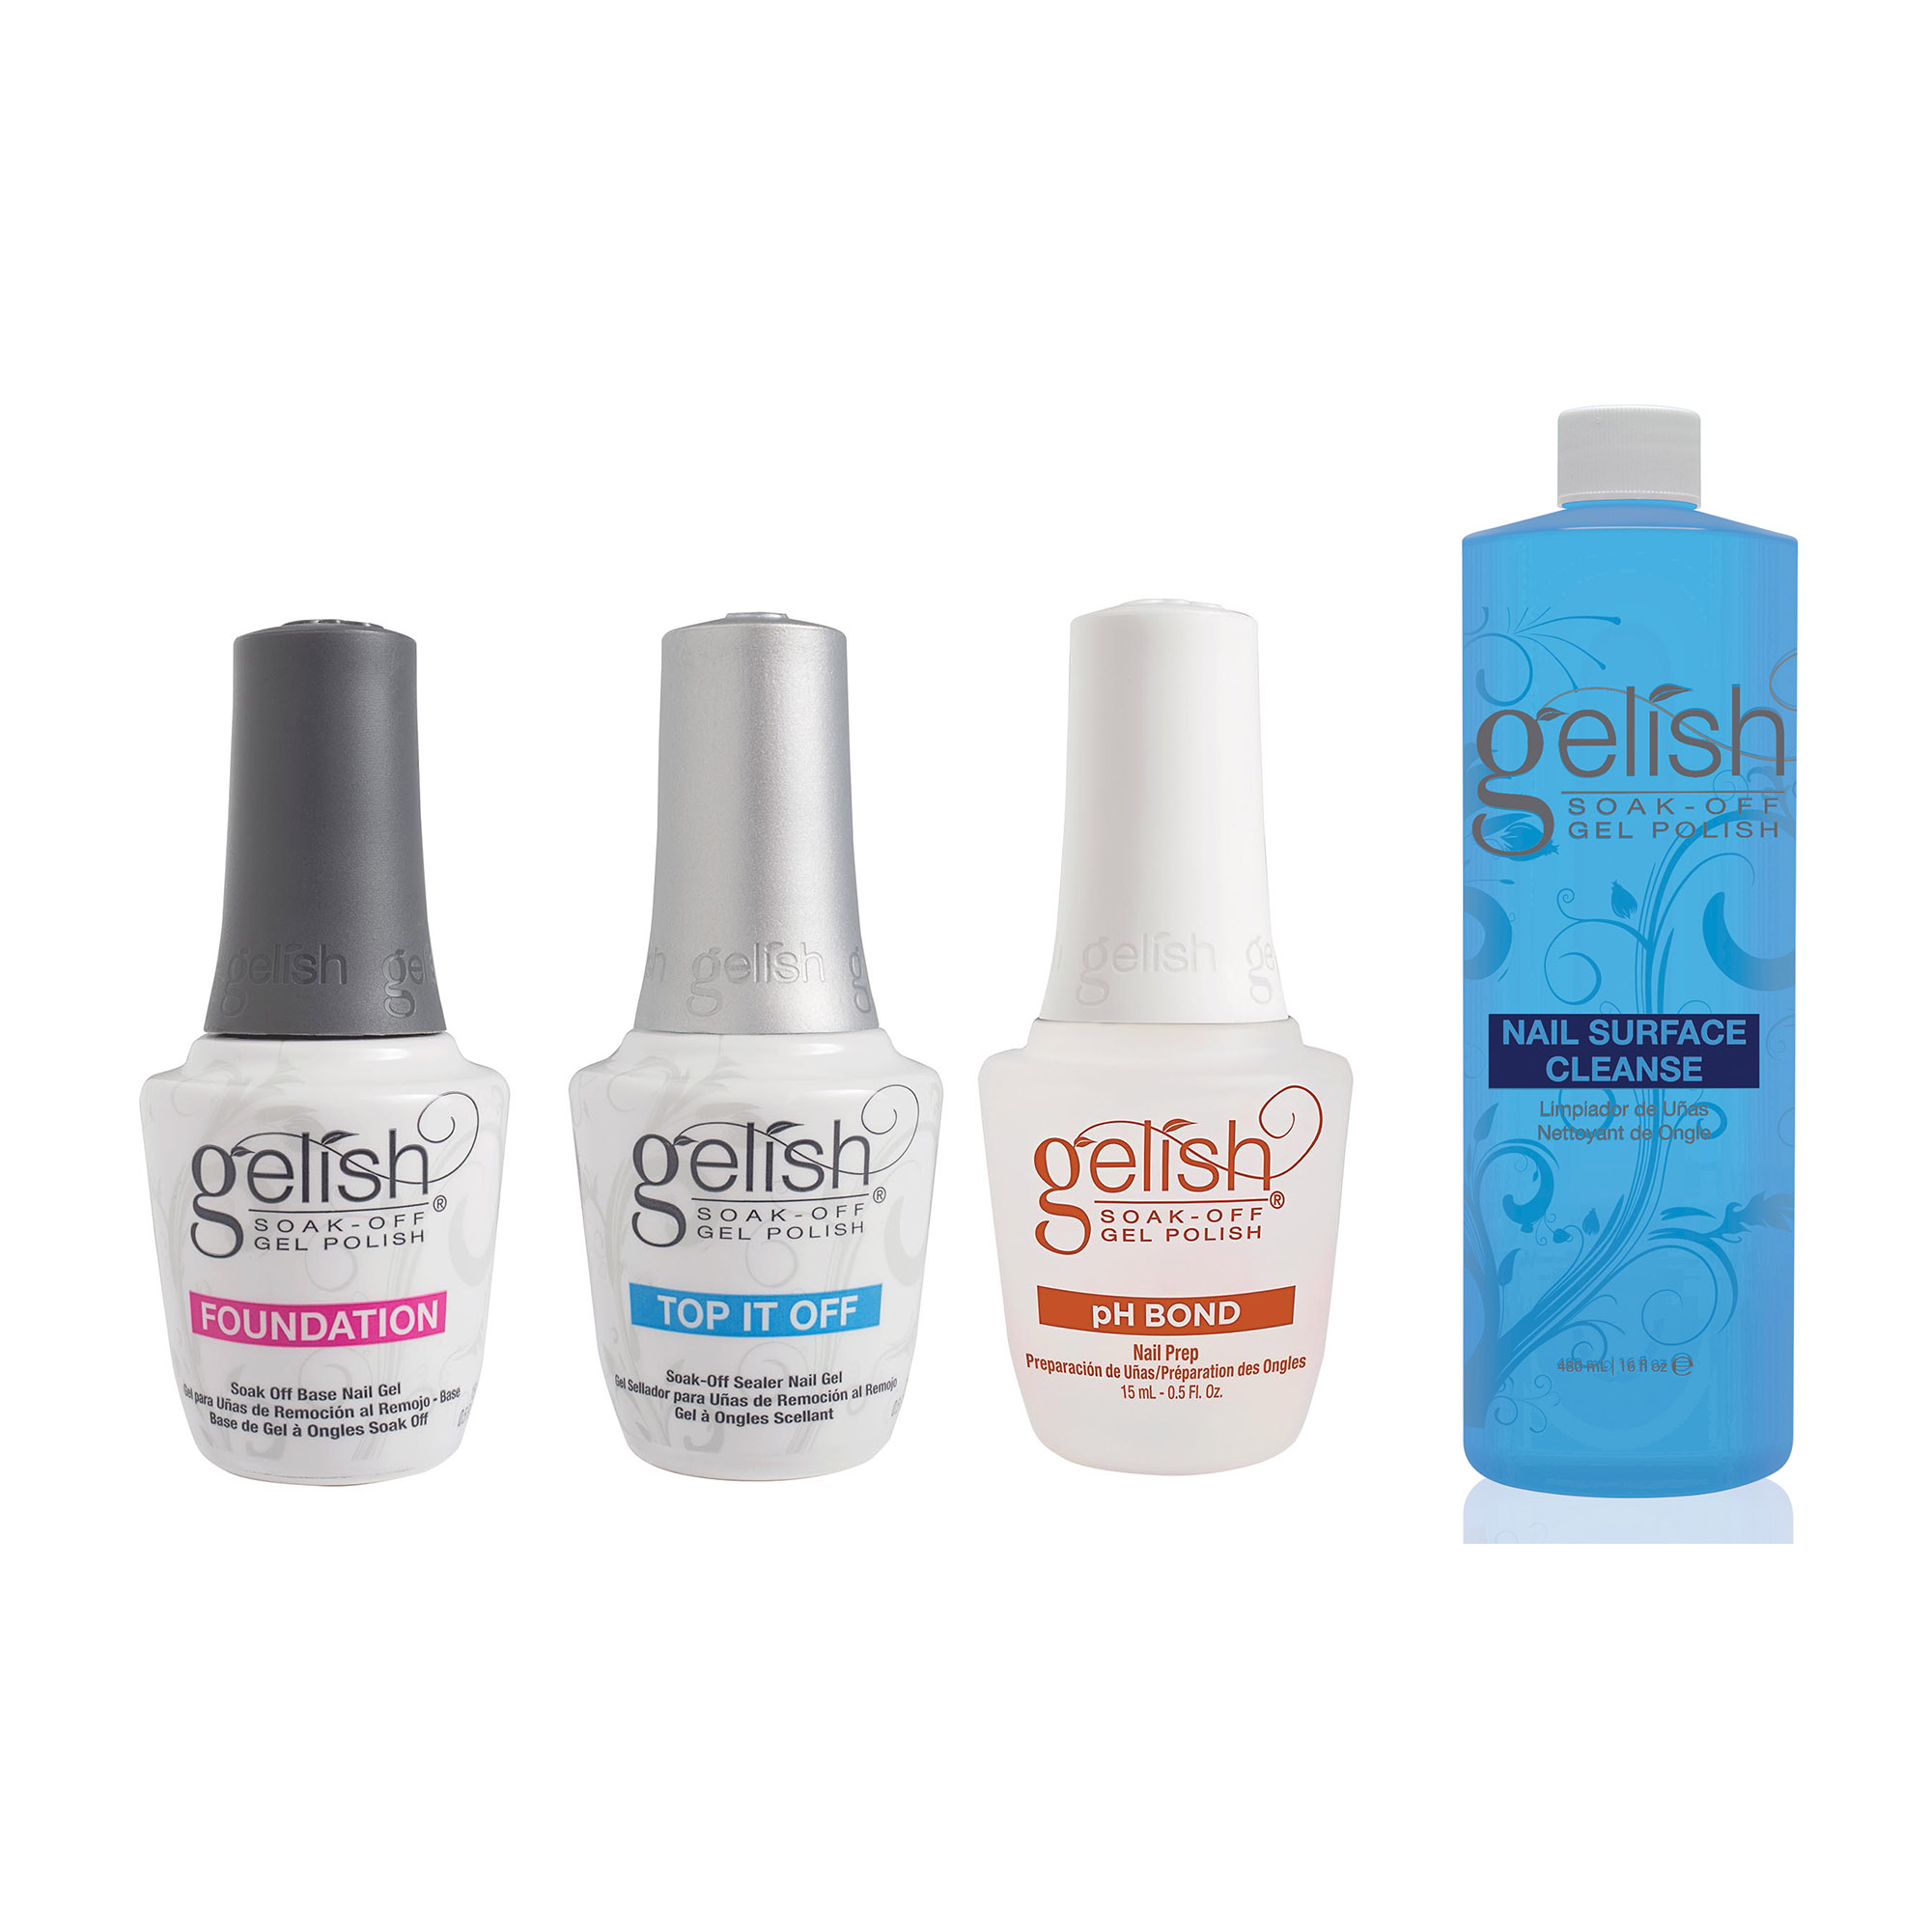 Gelish Terrific Trio Gel Polish Essentials Kit Nail Surface Cleanser Bottle